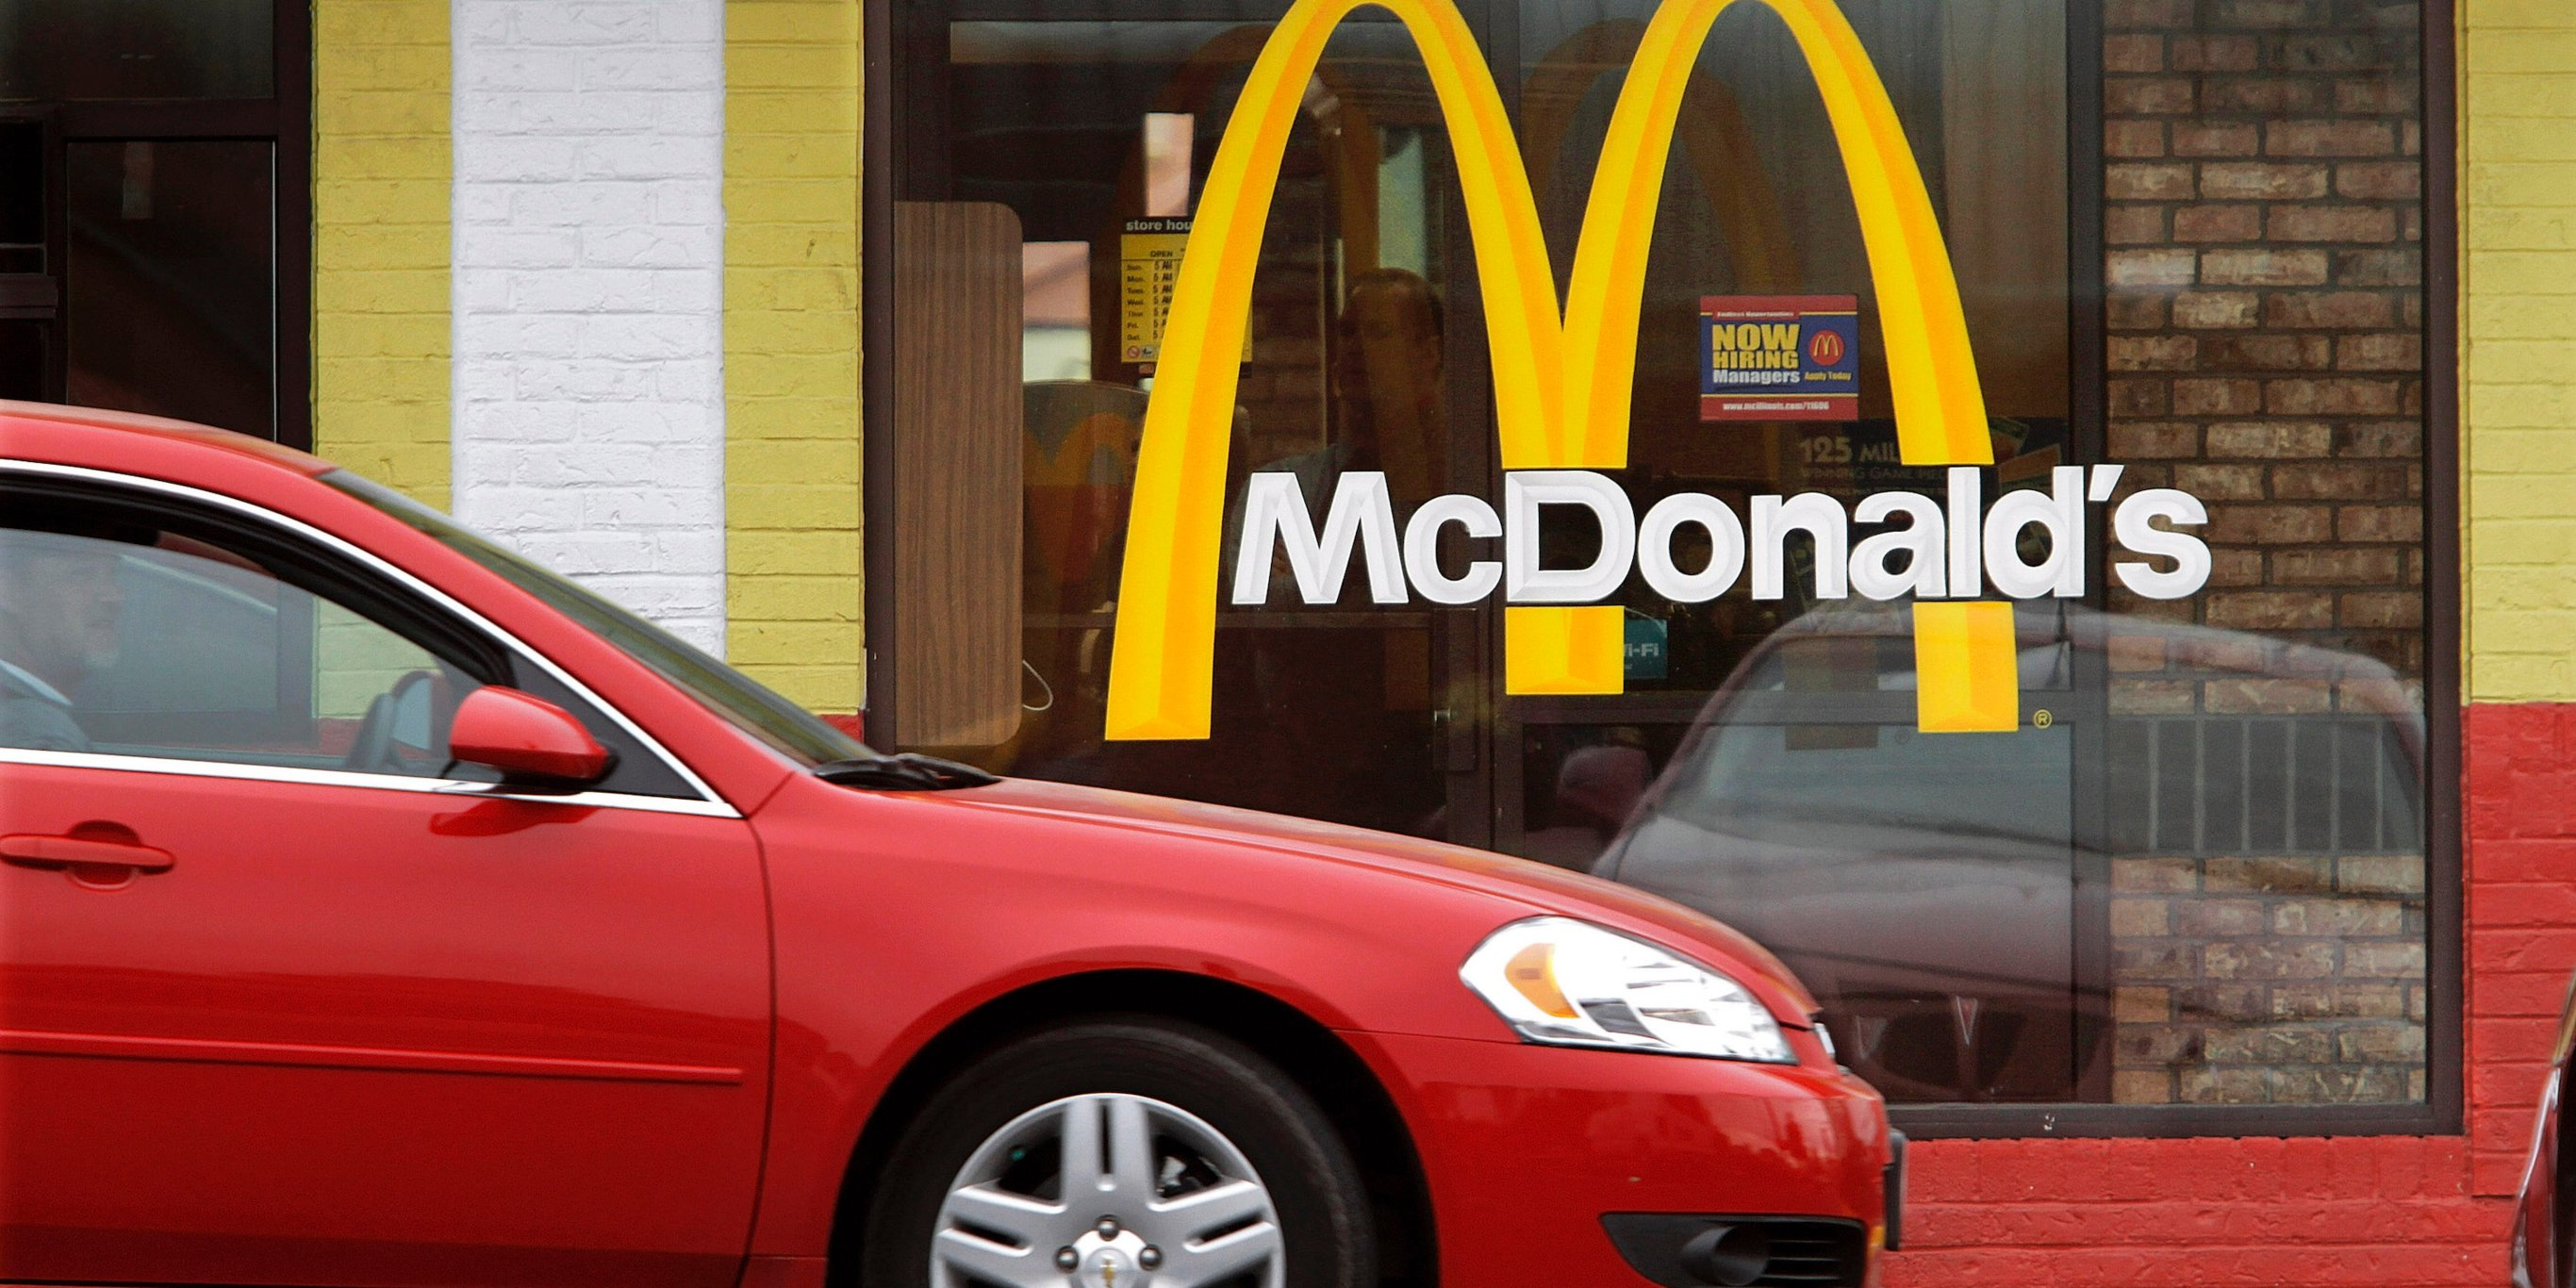 McDonald's bought an AI speech company to take human interaction out of drive-thrus